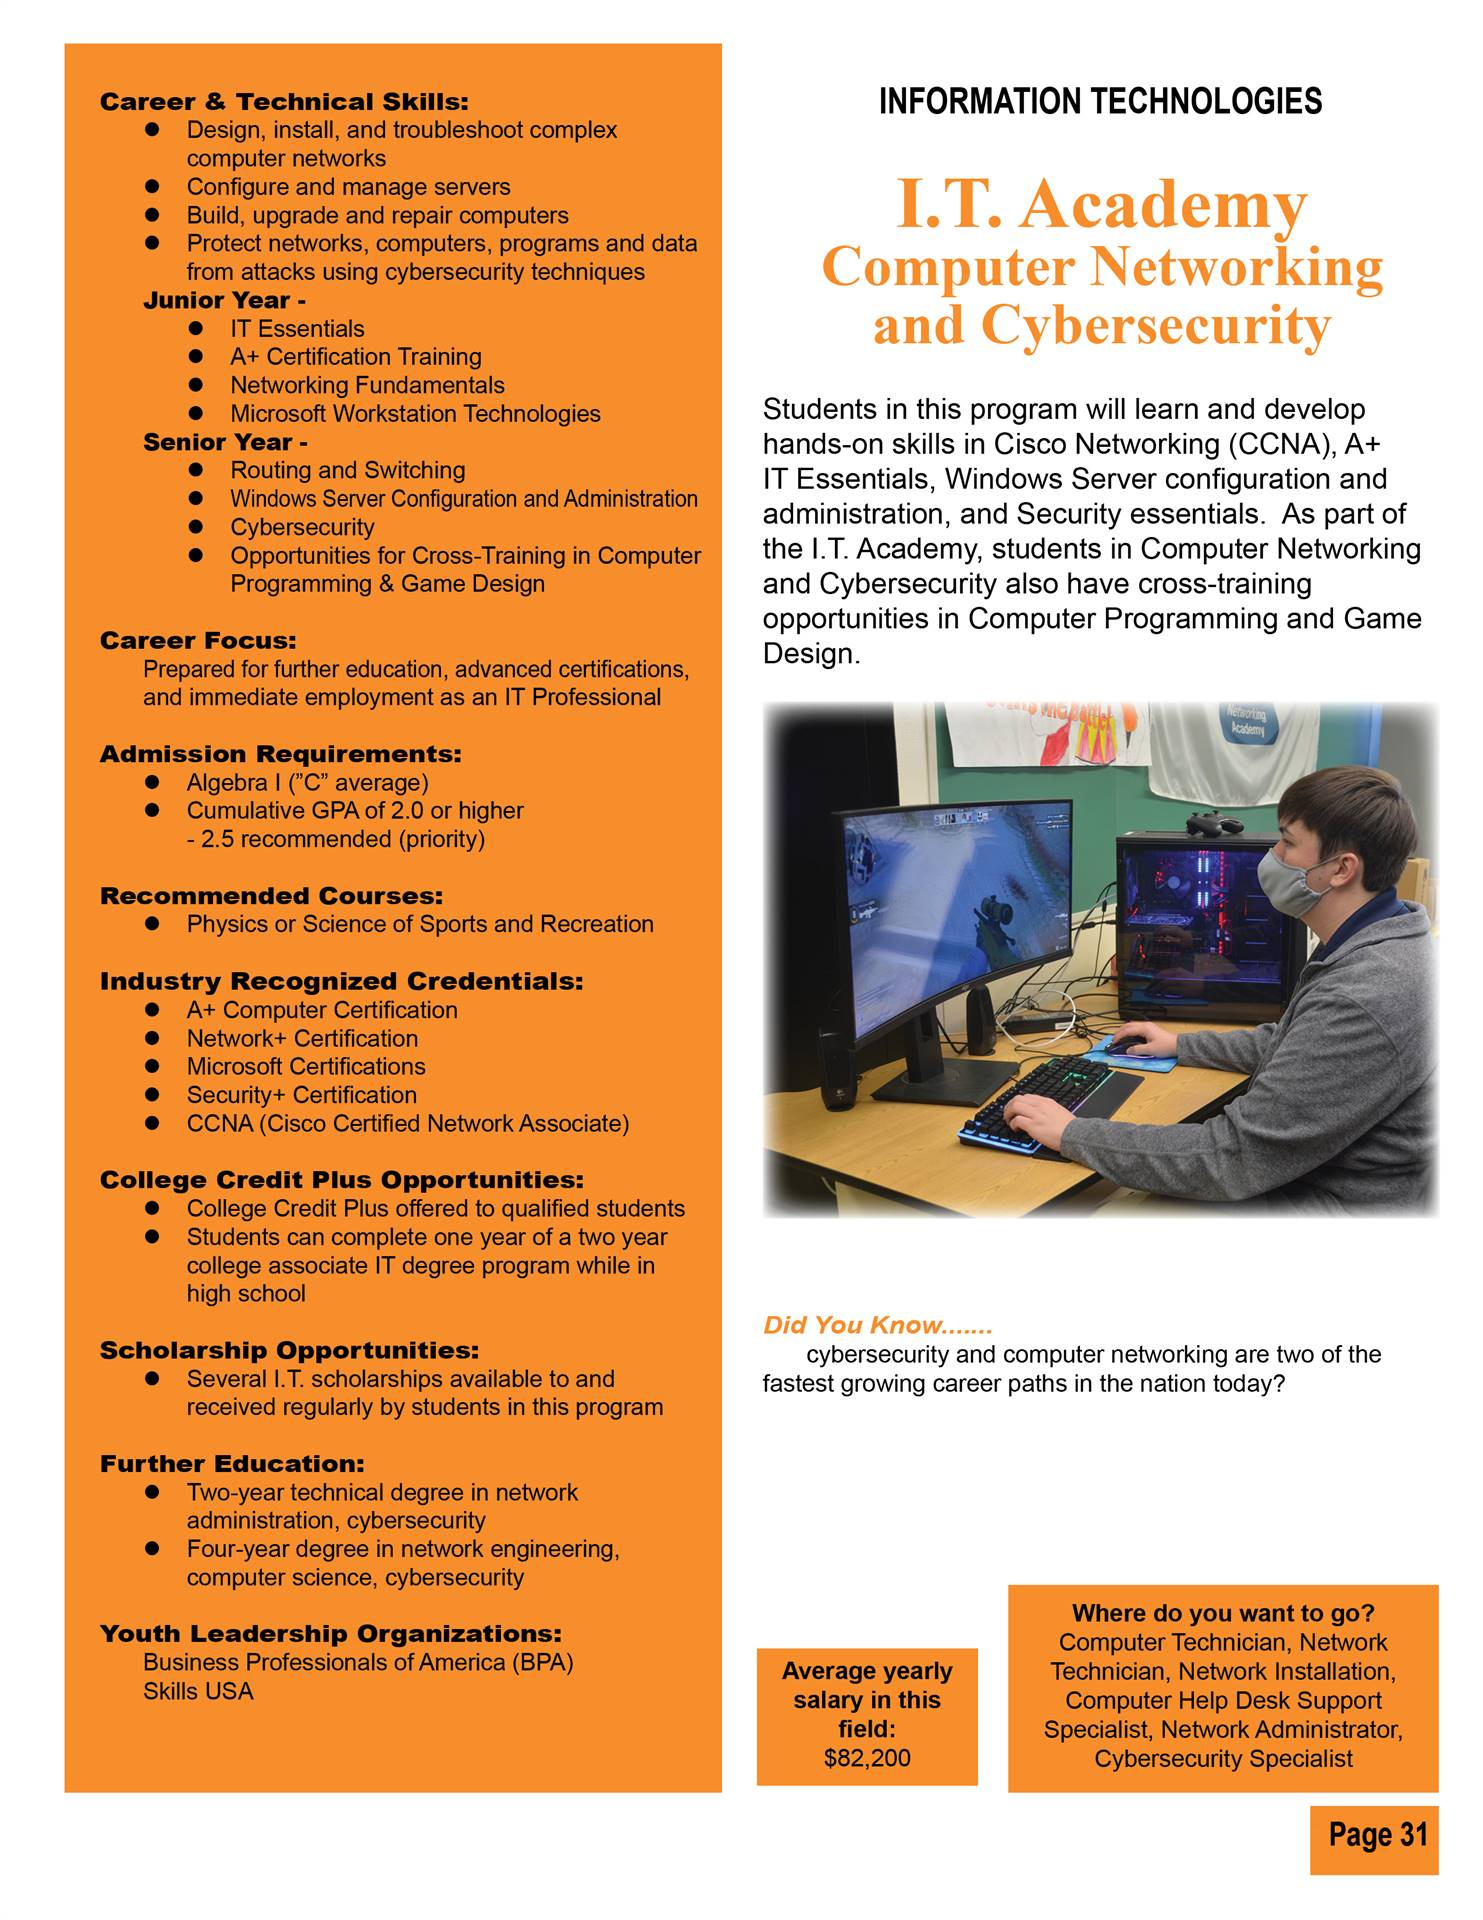 Computer Networking & Cybersecurity